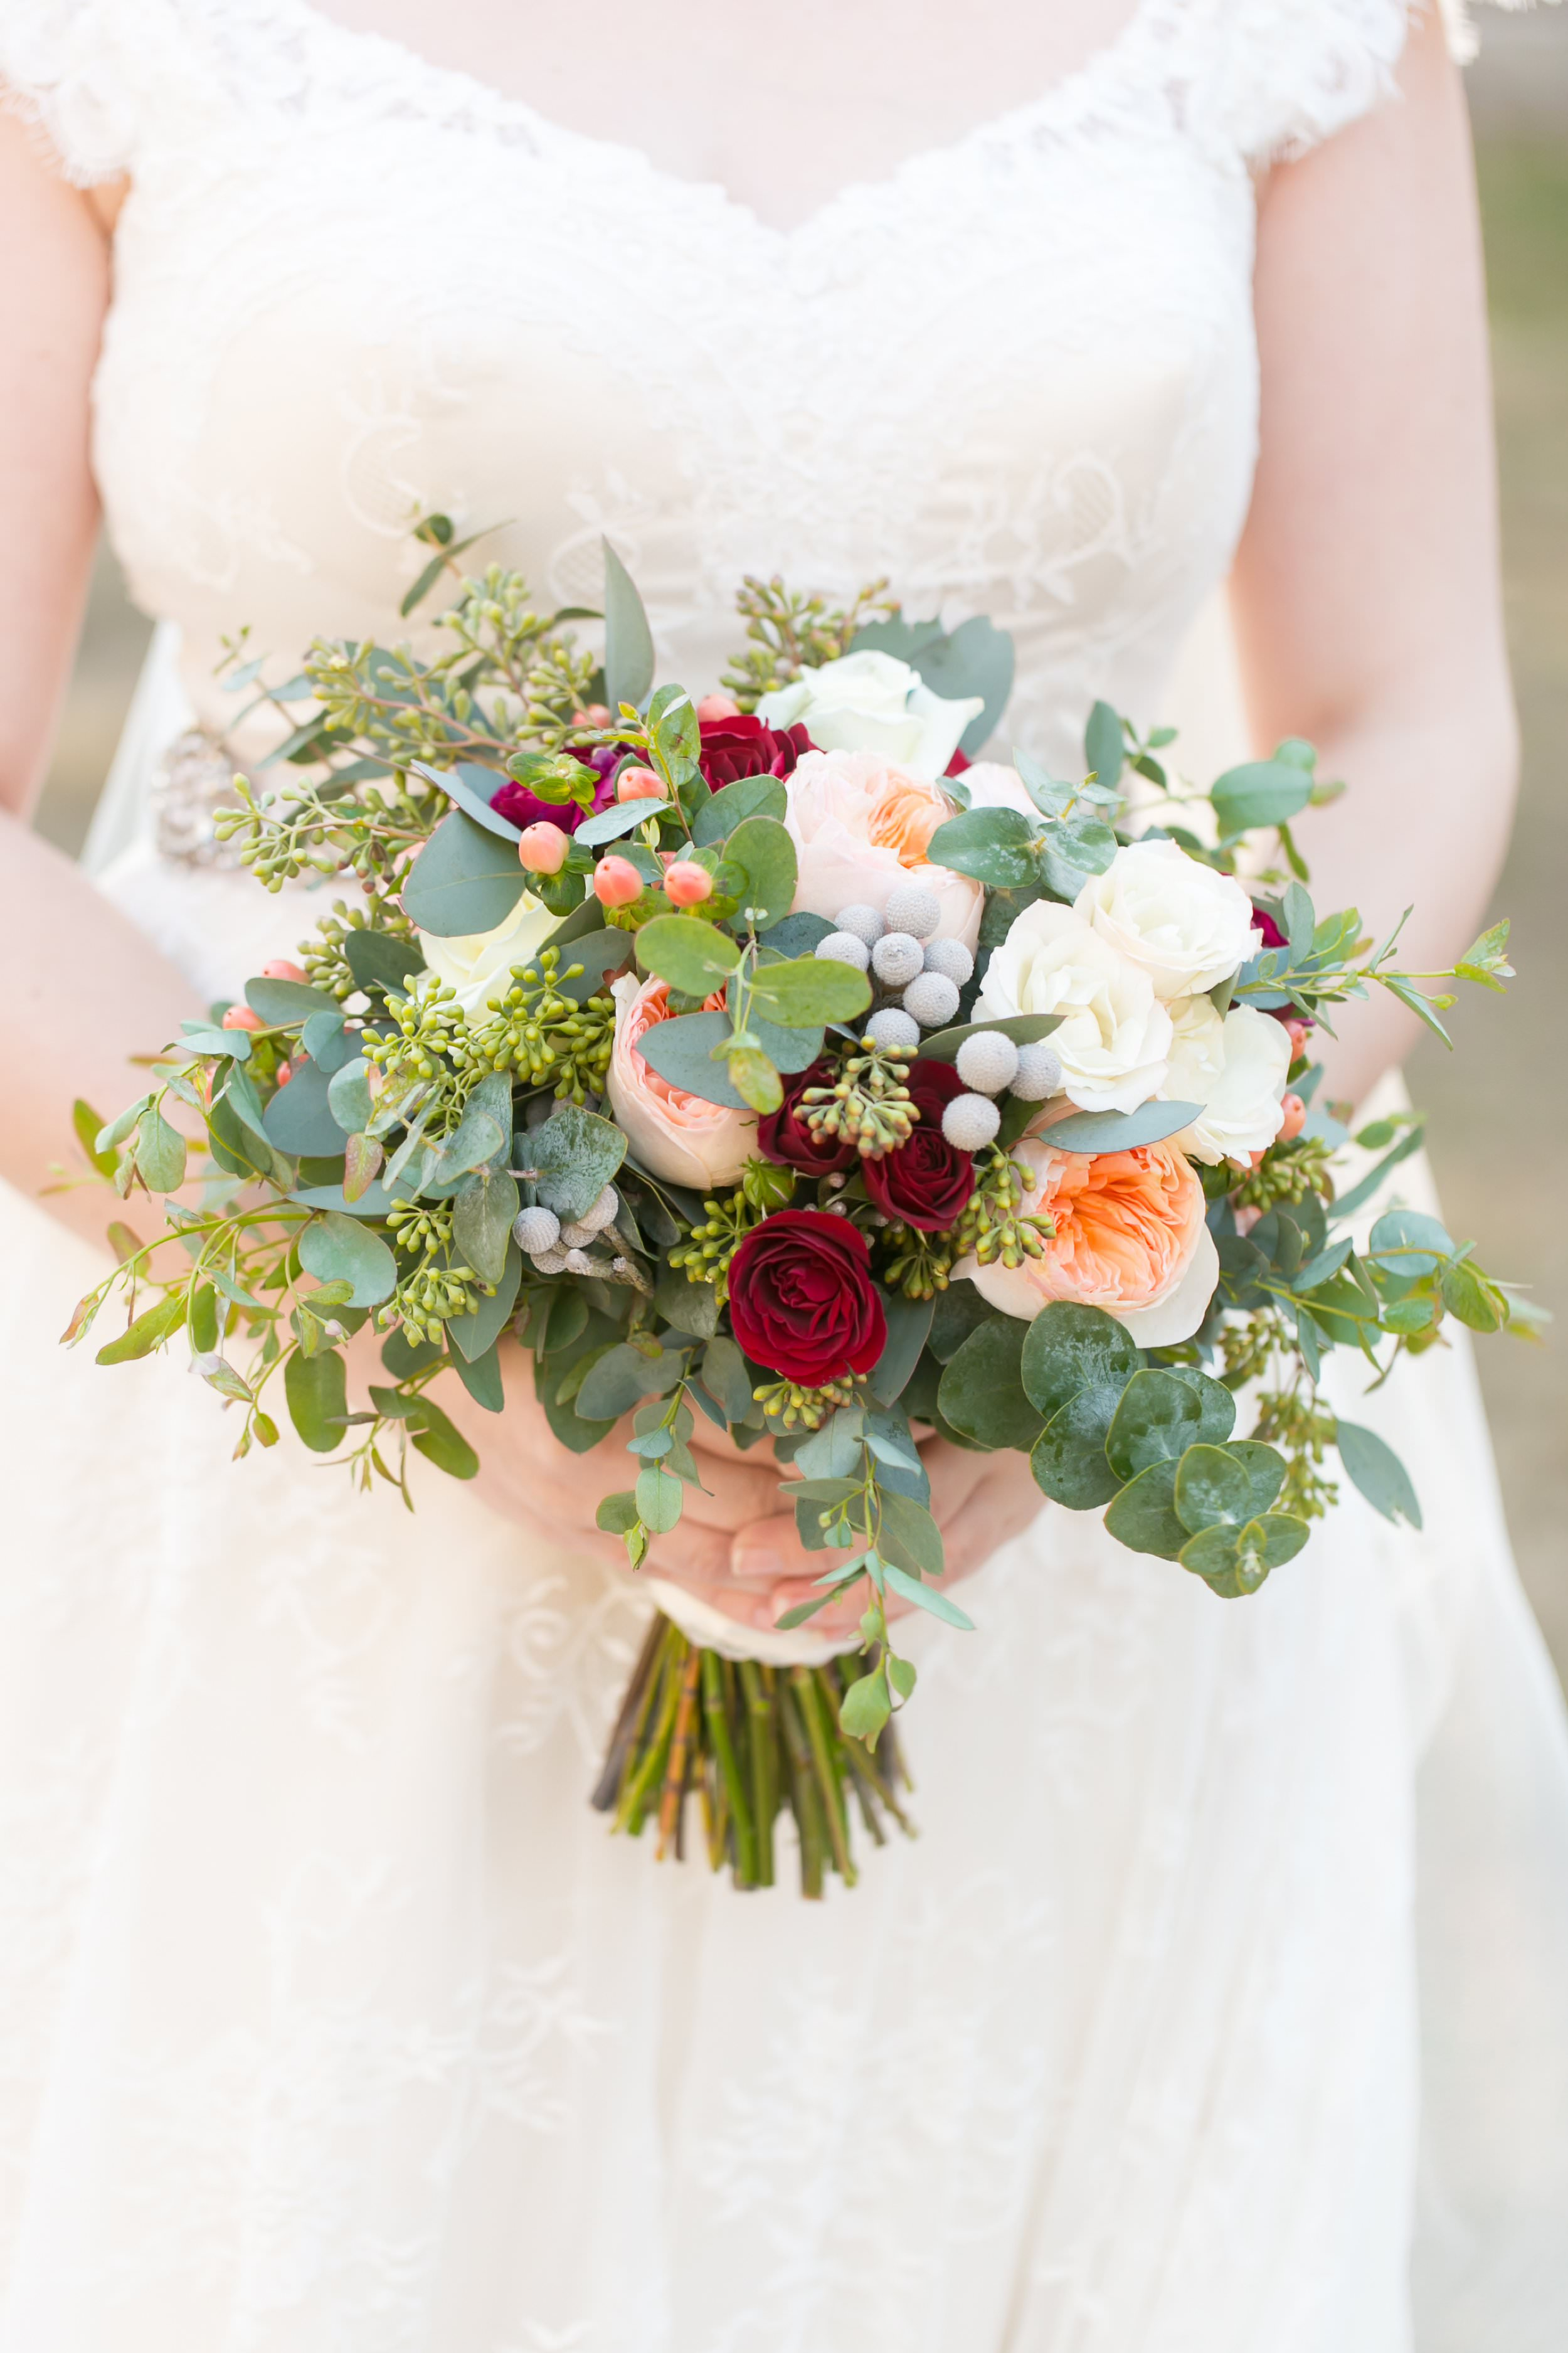 This delicate peach and green bouquet added a touch of warmth to Jason and Amanda's winter wedding.